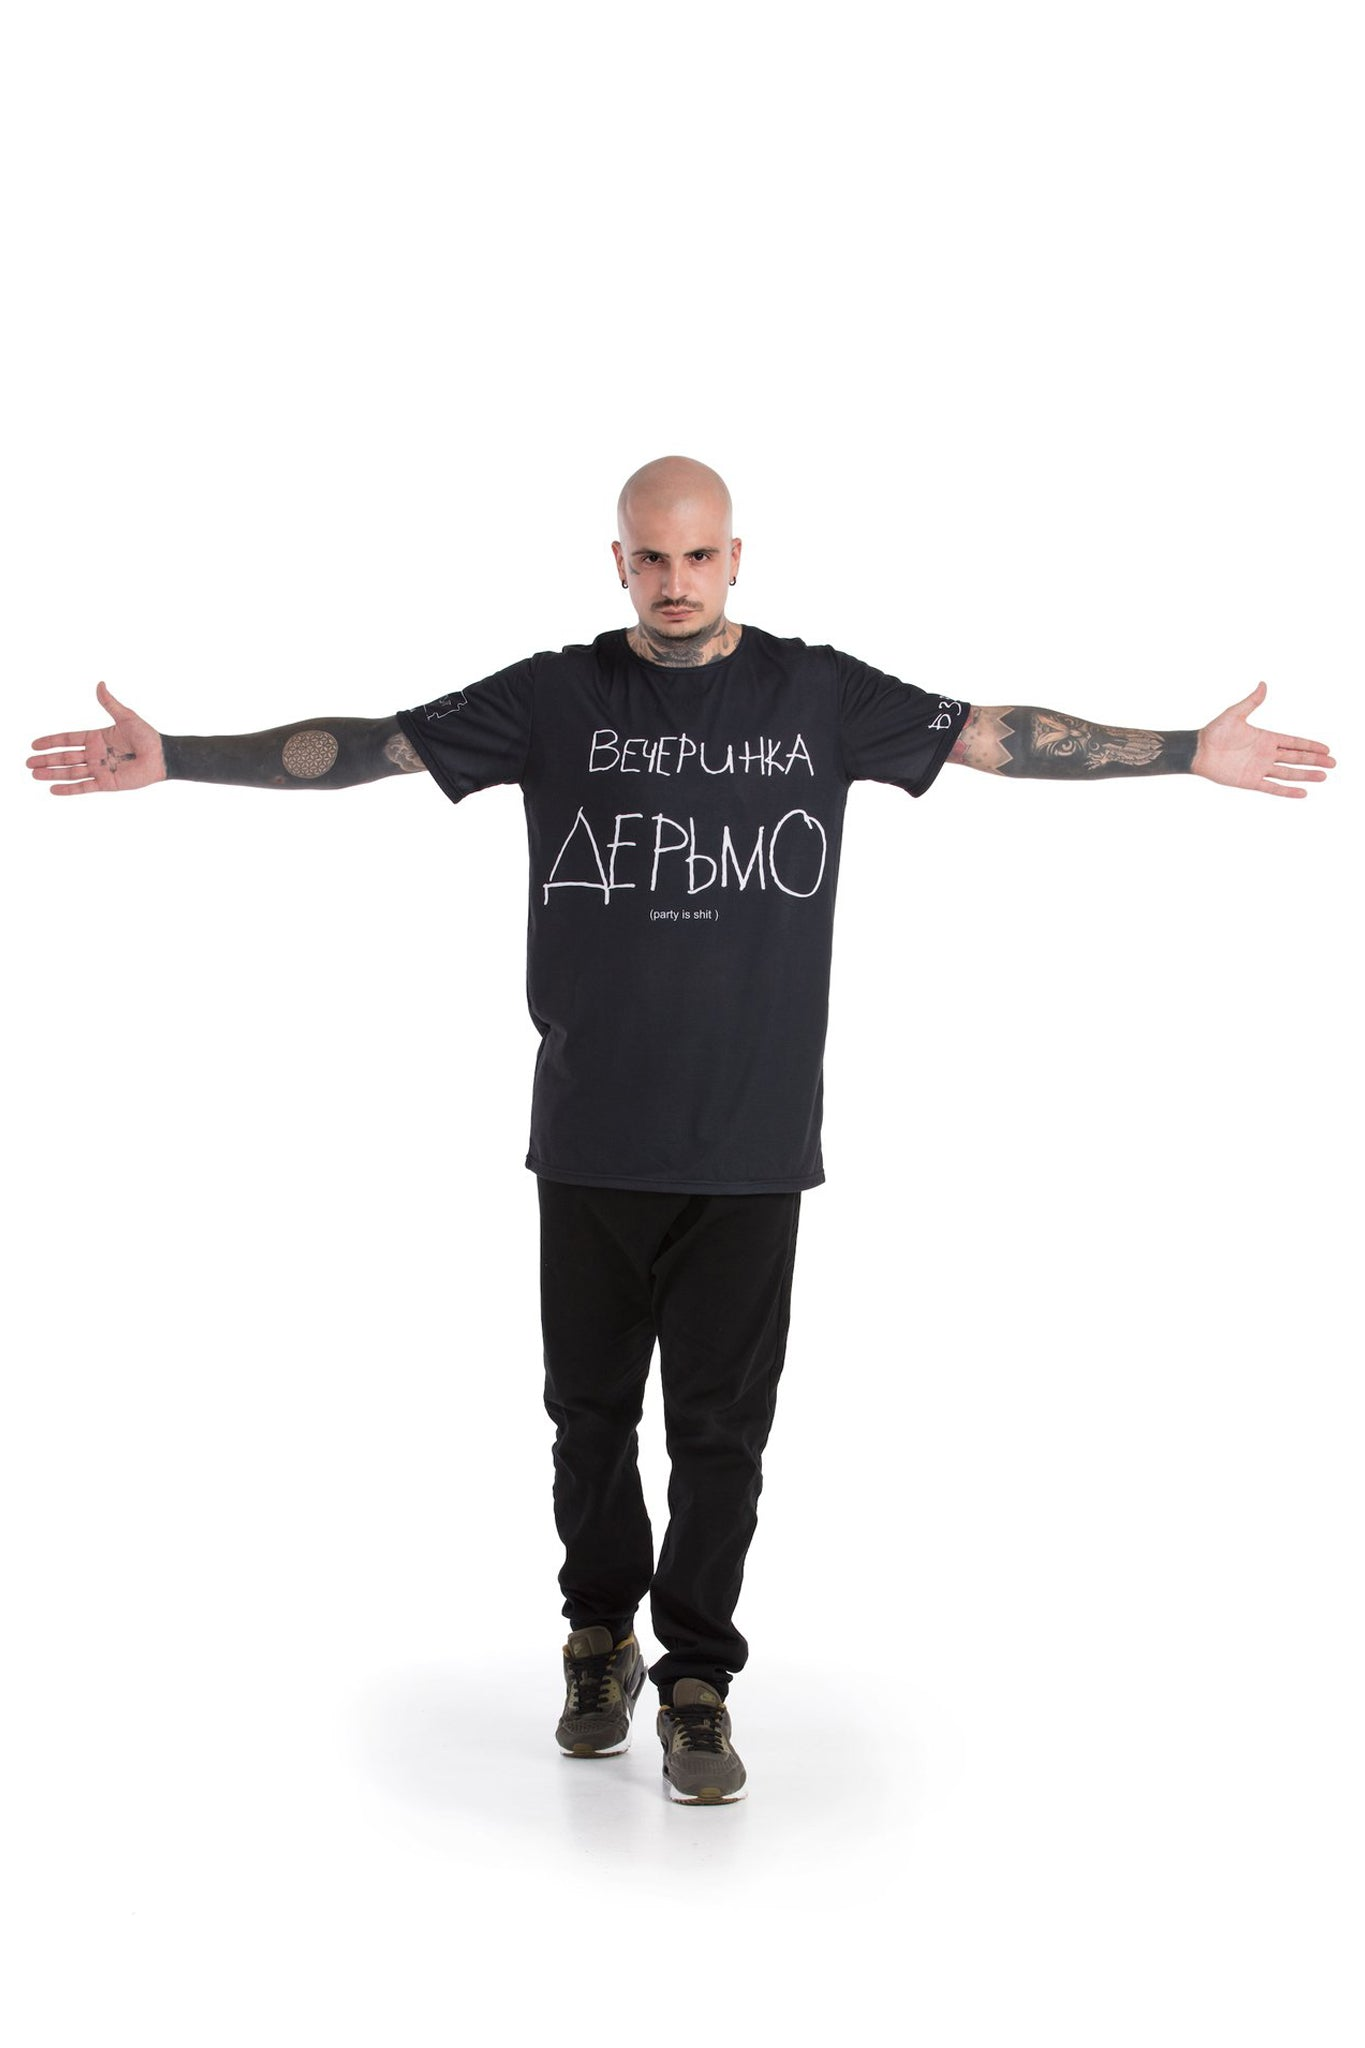 Вечеринка Дерьмо / Без Техно. - oversized T-shirt [Black]